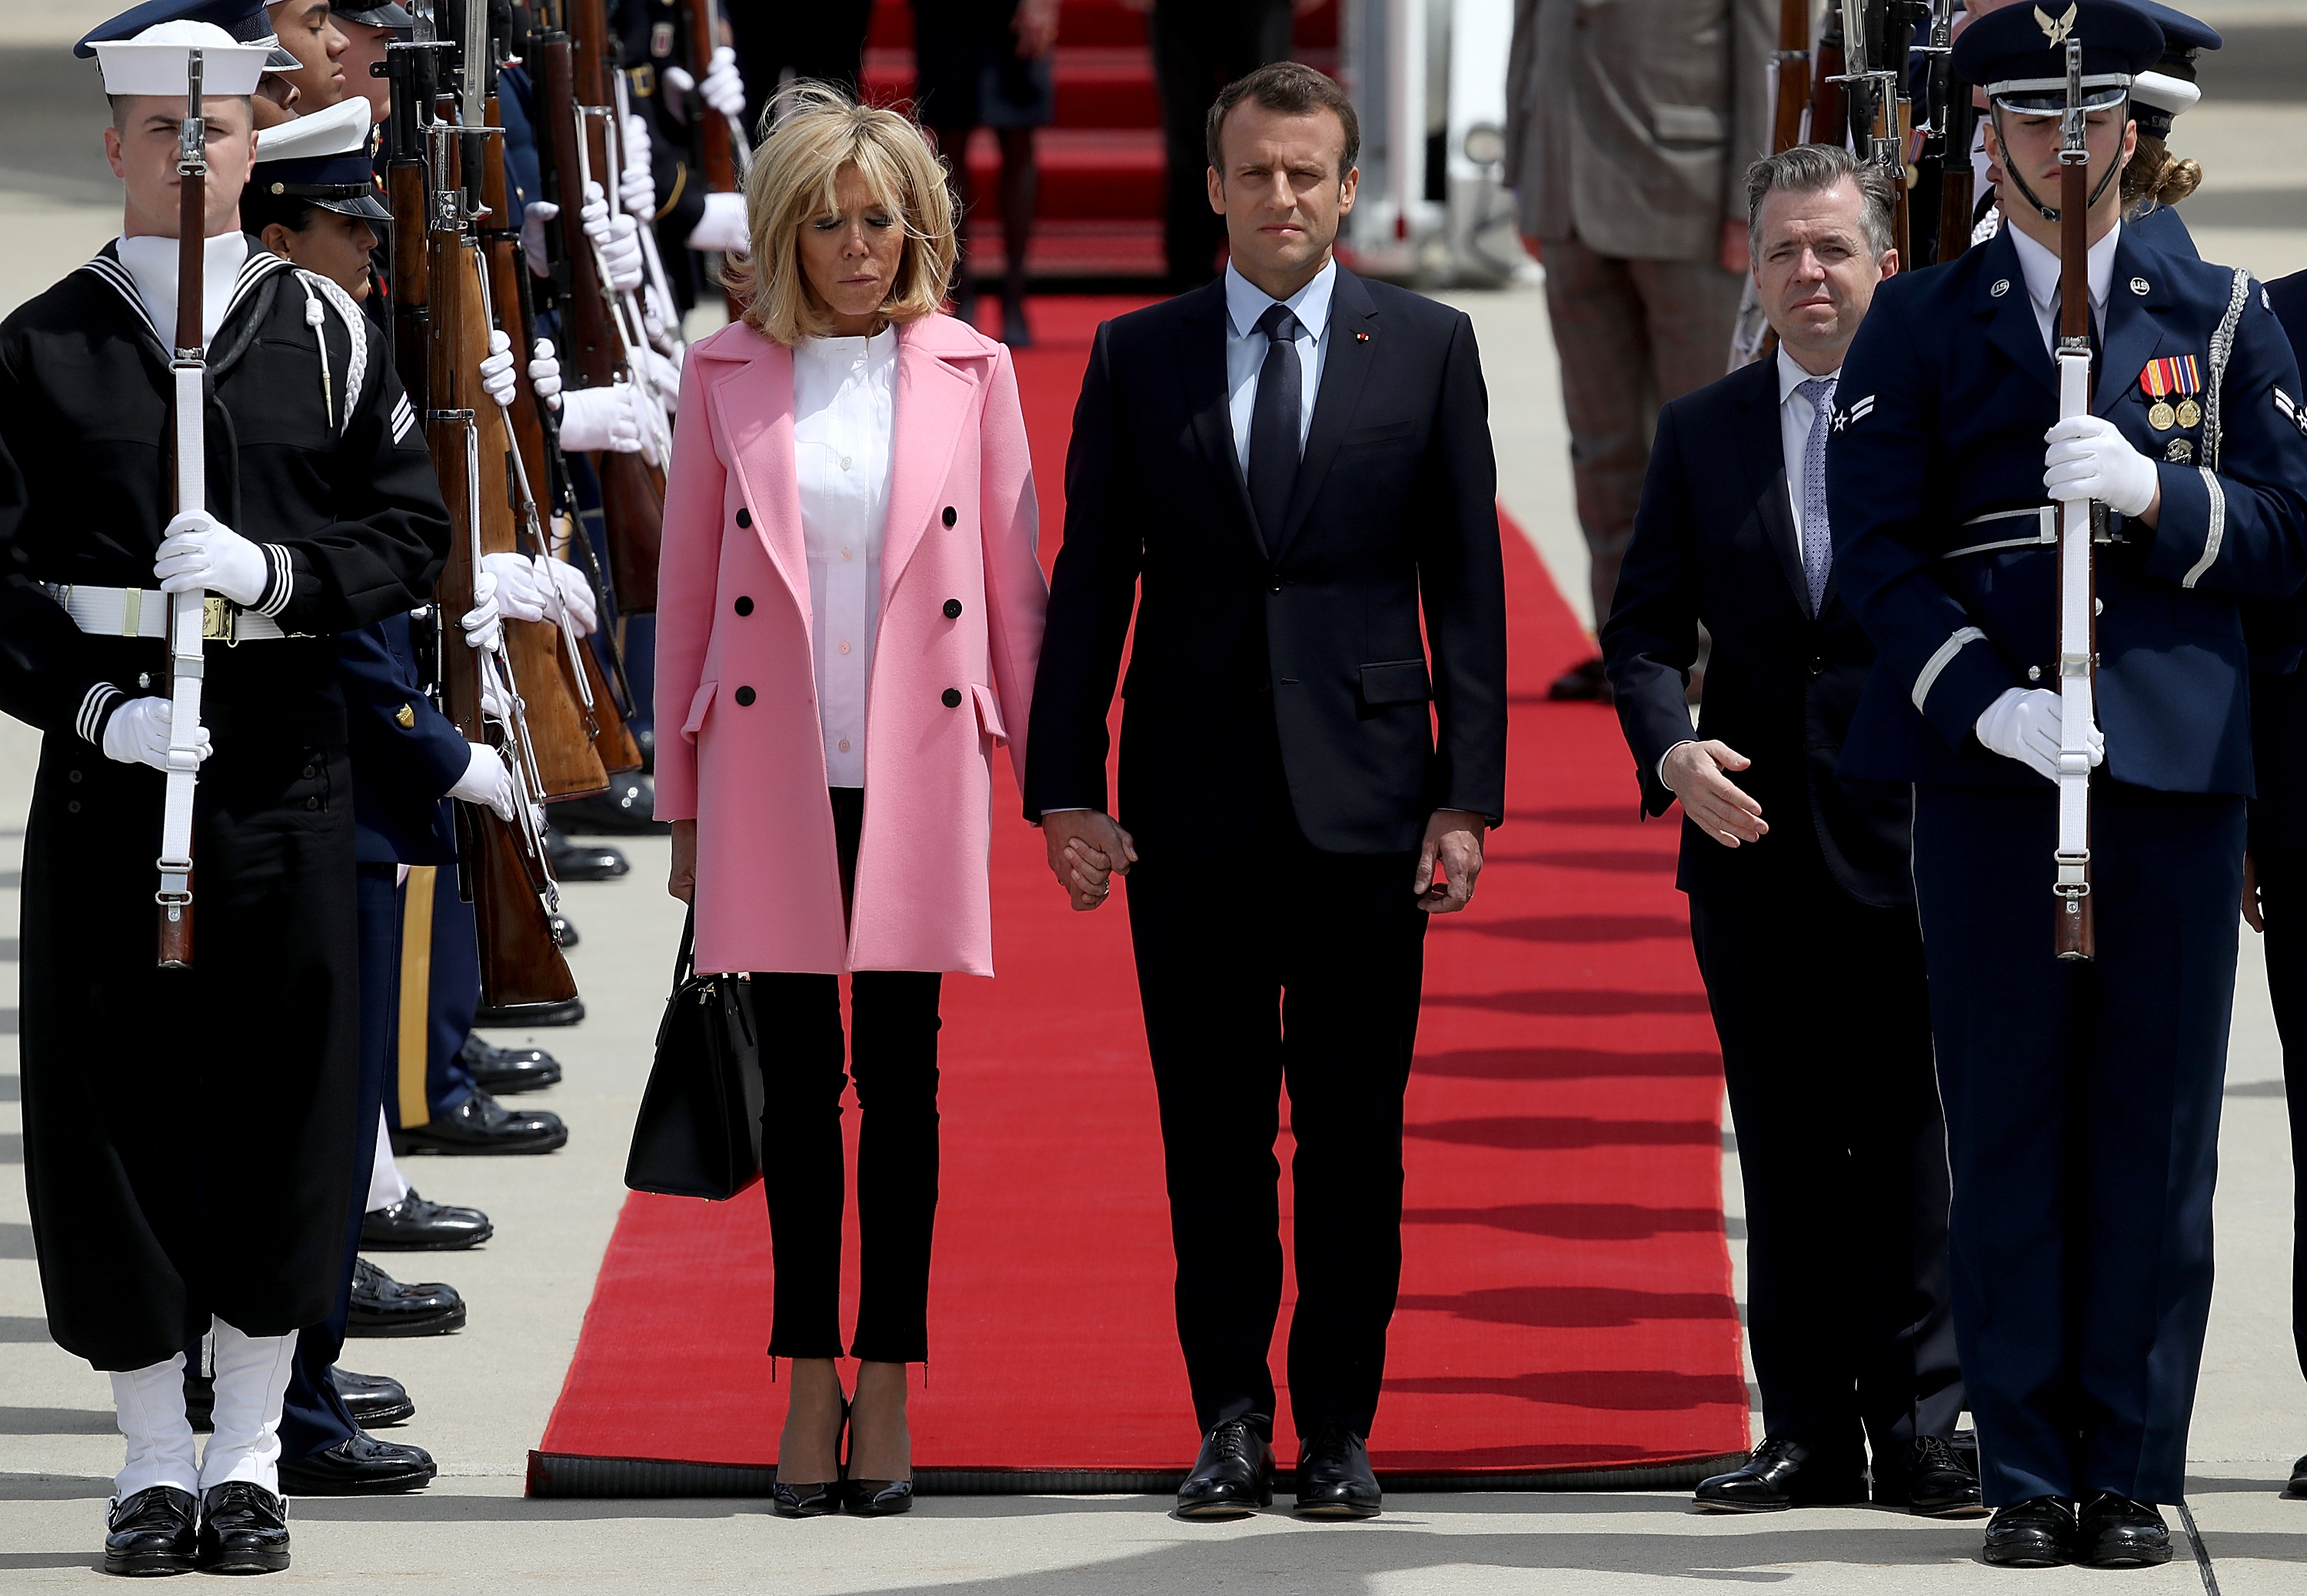 JOINT BASE ANDREWS, MD - APRIL 23:  French President Emmanuel Macron and  his wife Brigitte arrive at Andrews Air Force Base April 23, 2018 at Joint Base Andrews, Maryland. Macron is in Washington for the first state visit hosted by U.S. President Donald Trump.  (Photo by Win McNamee/Getty Images)